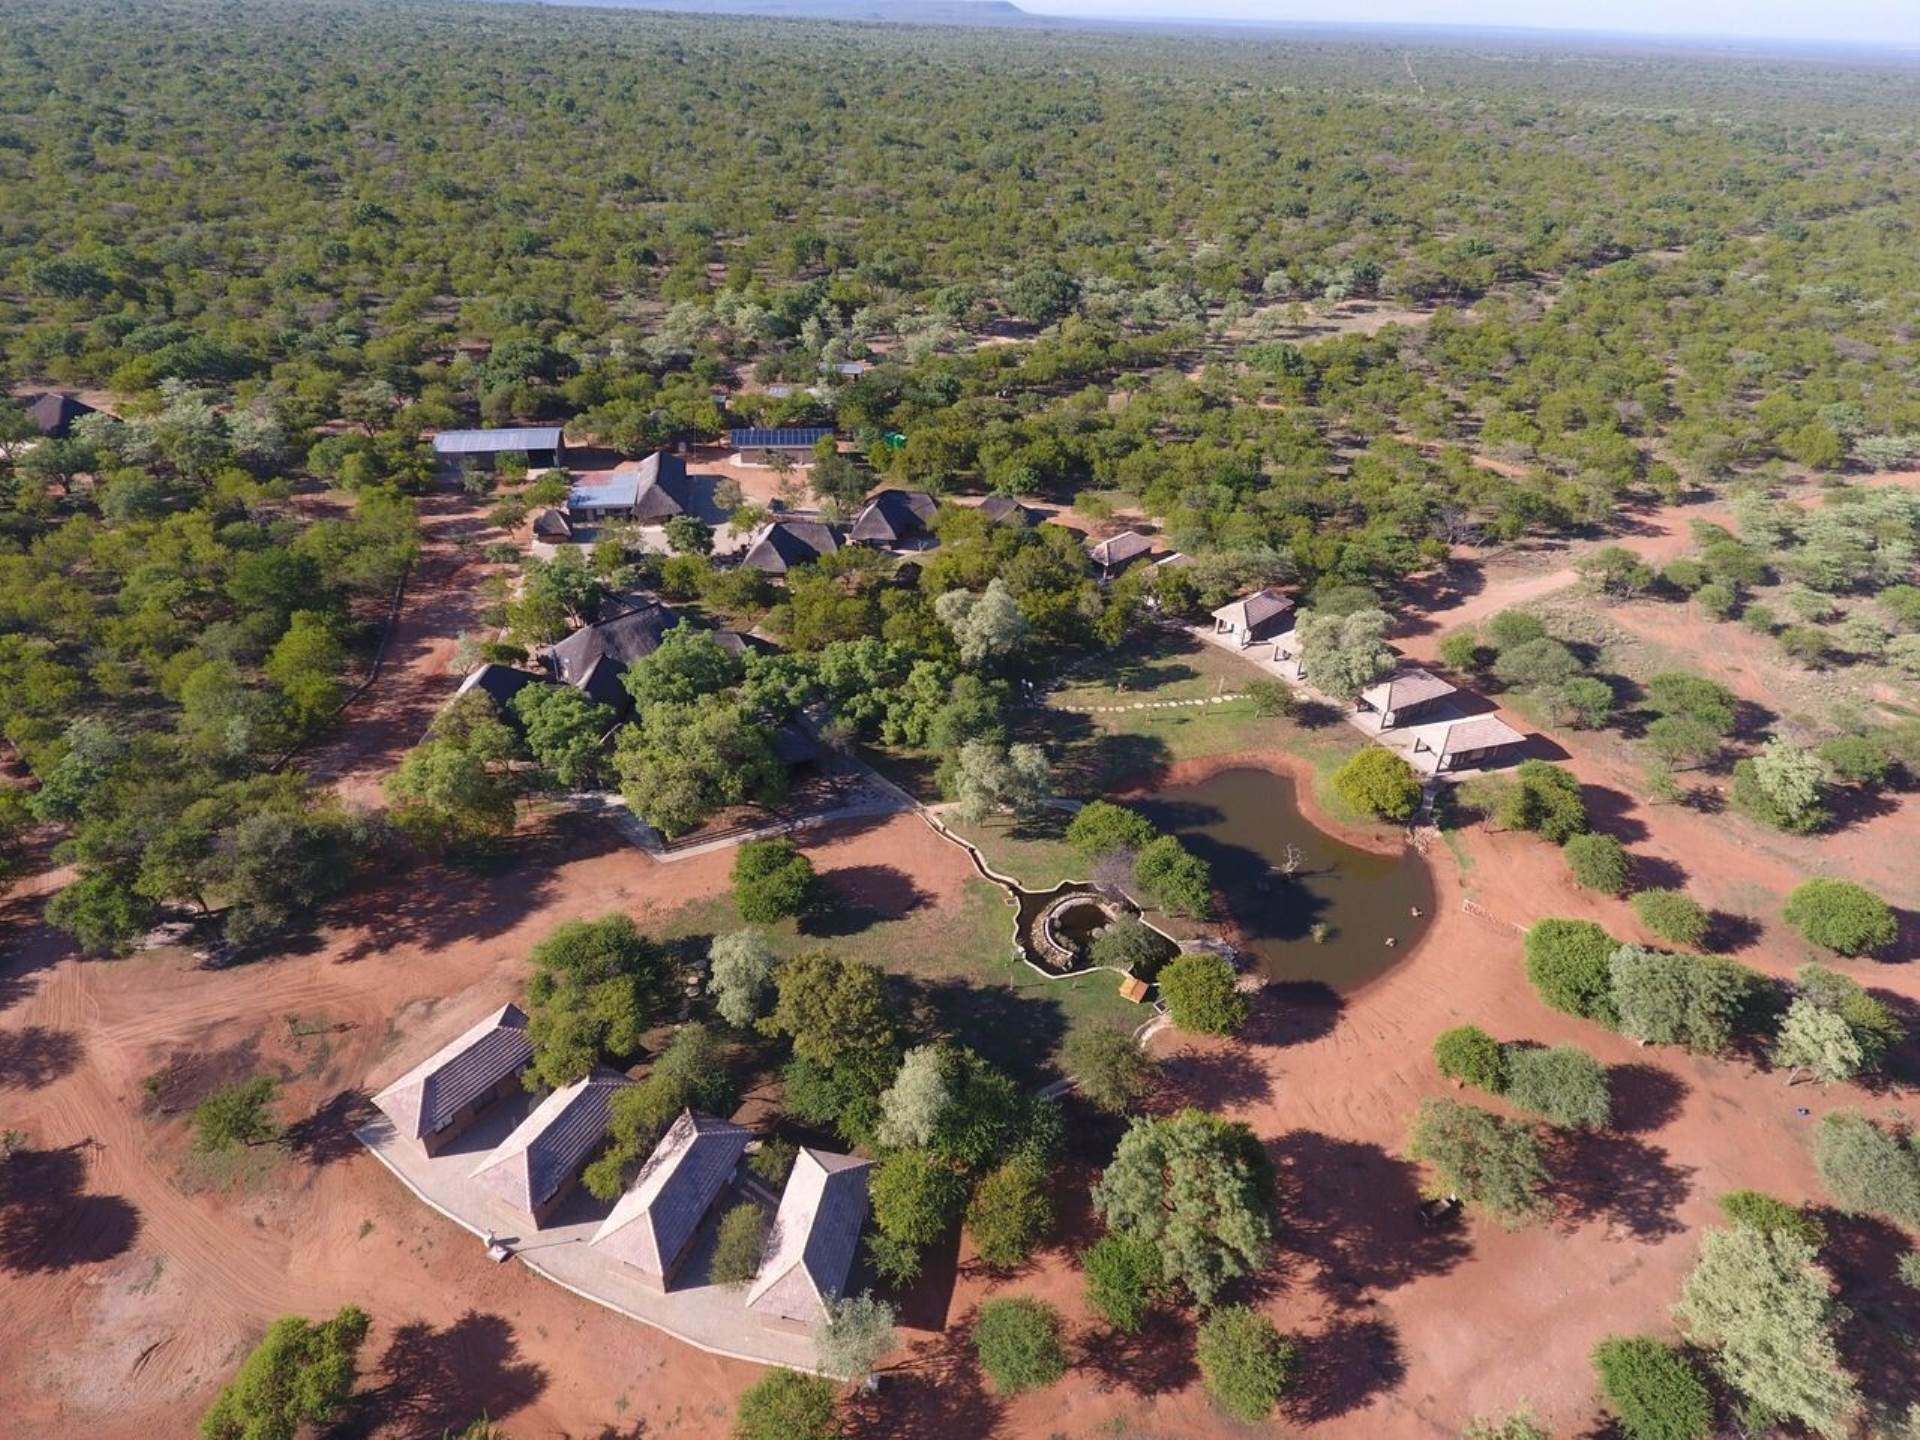 12 BedroomGame Farm Lodge For Sale In Nylstroom